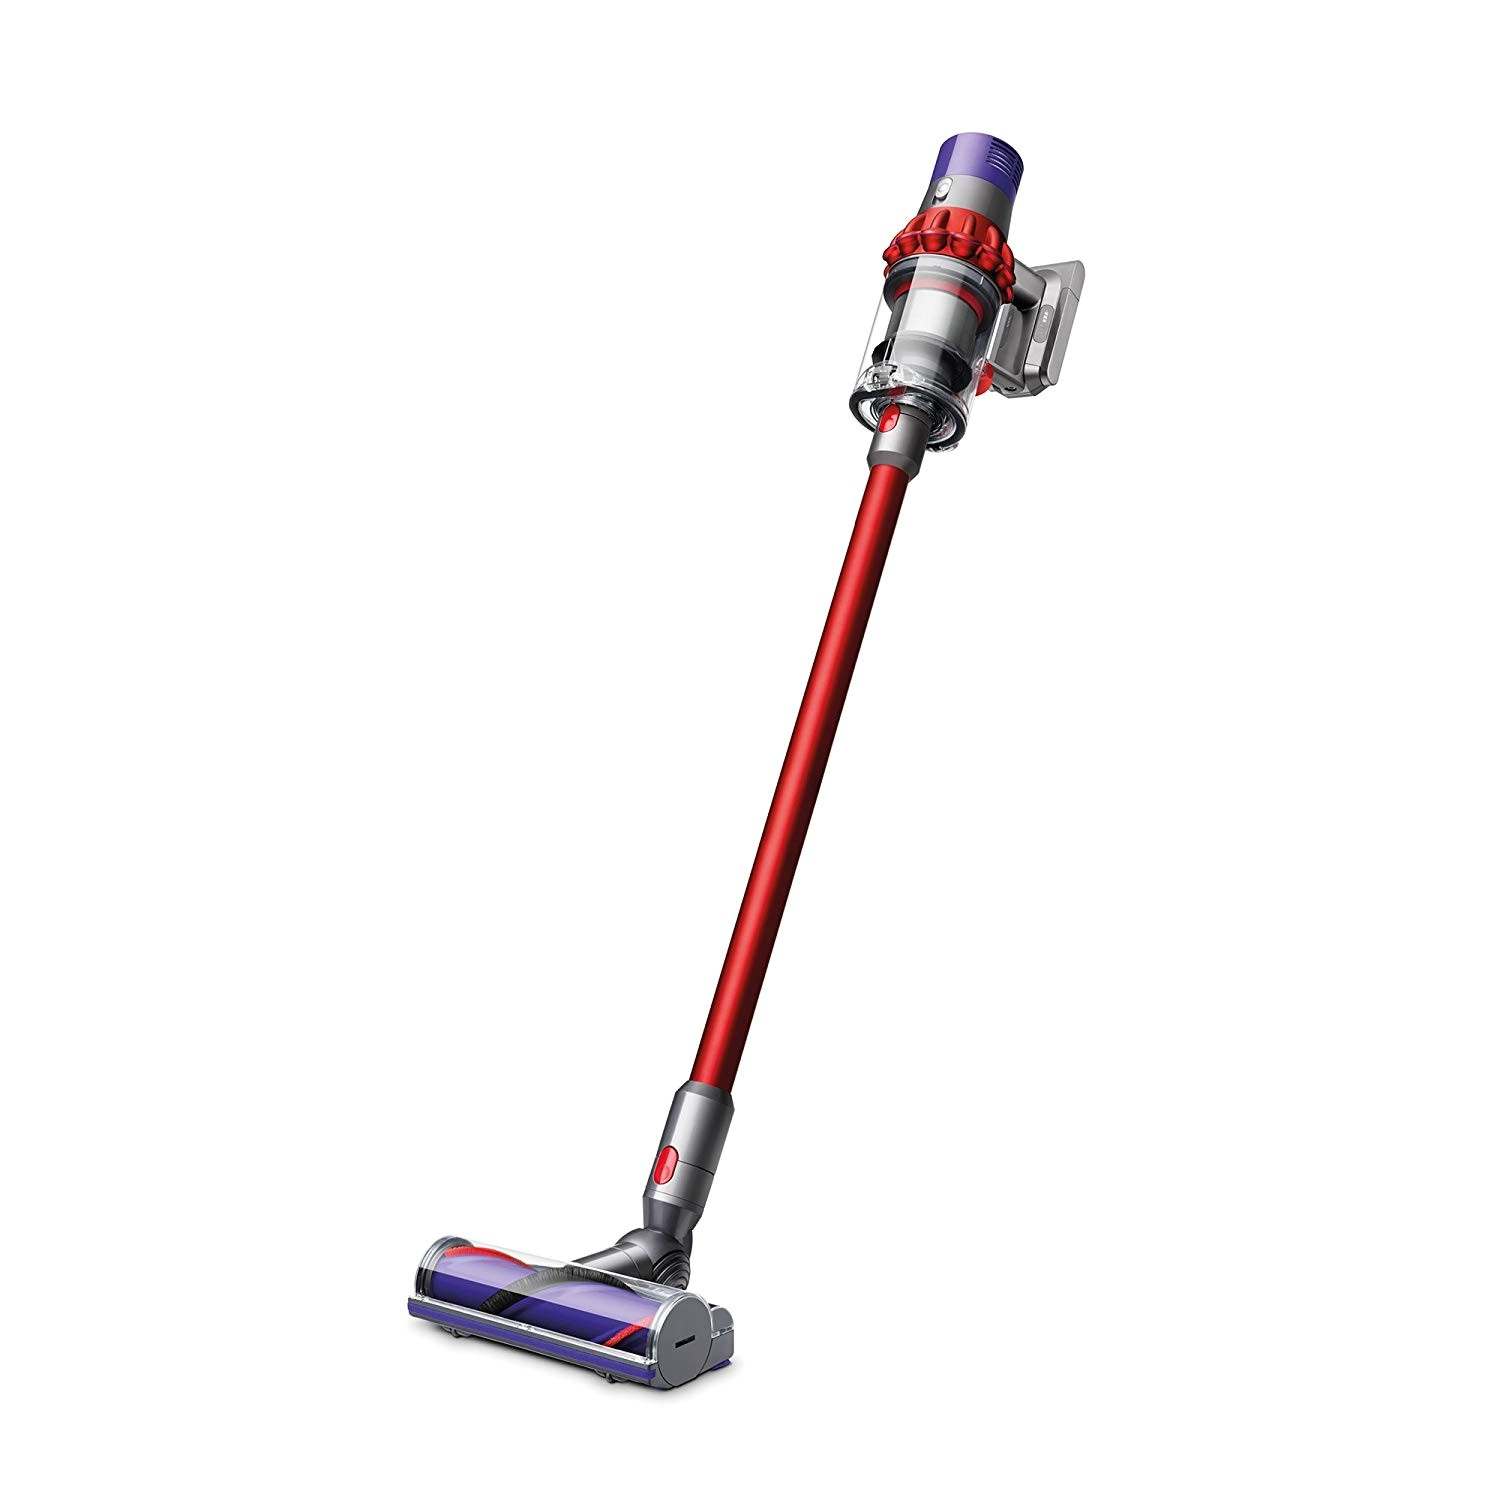 amazon com dyson cyclone v10 motorhead lightweight cordless stick vacuum cleaner